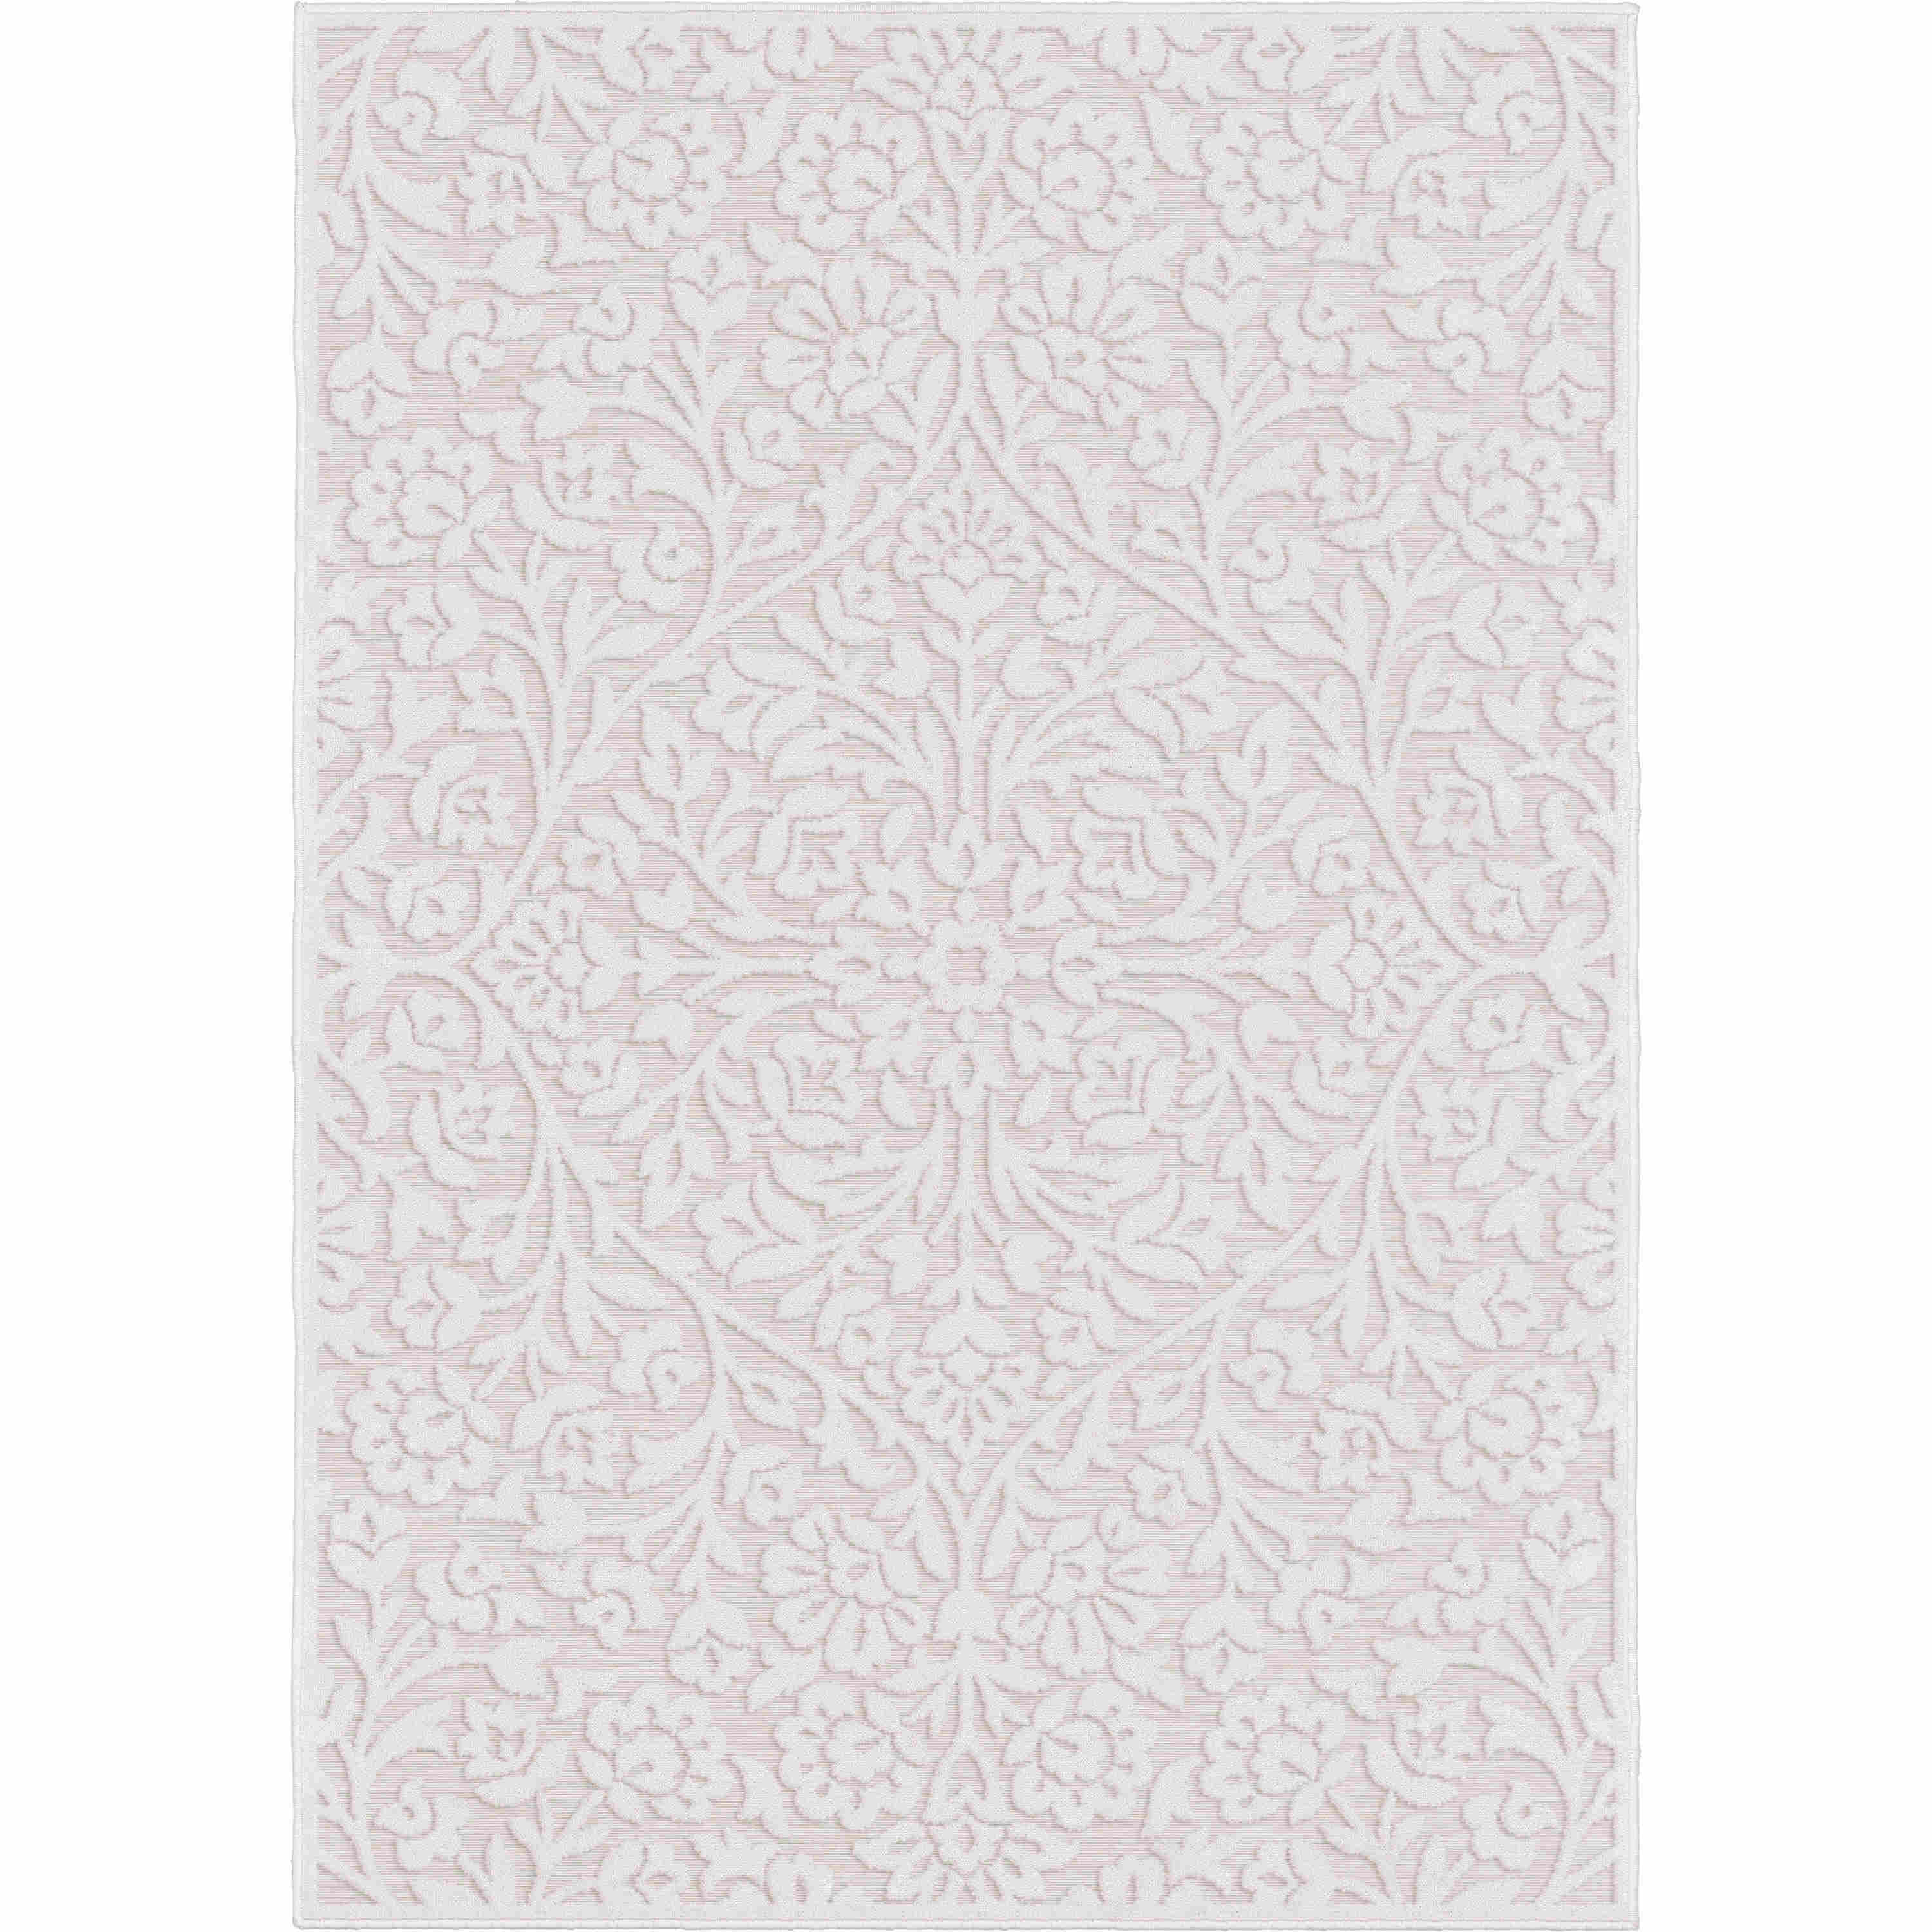 Orian Socal Living By Jennifer Adams Traditional Rug 9107